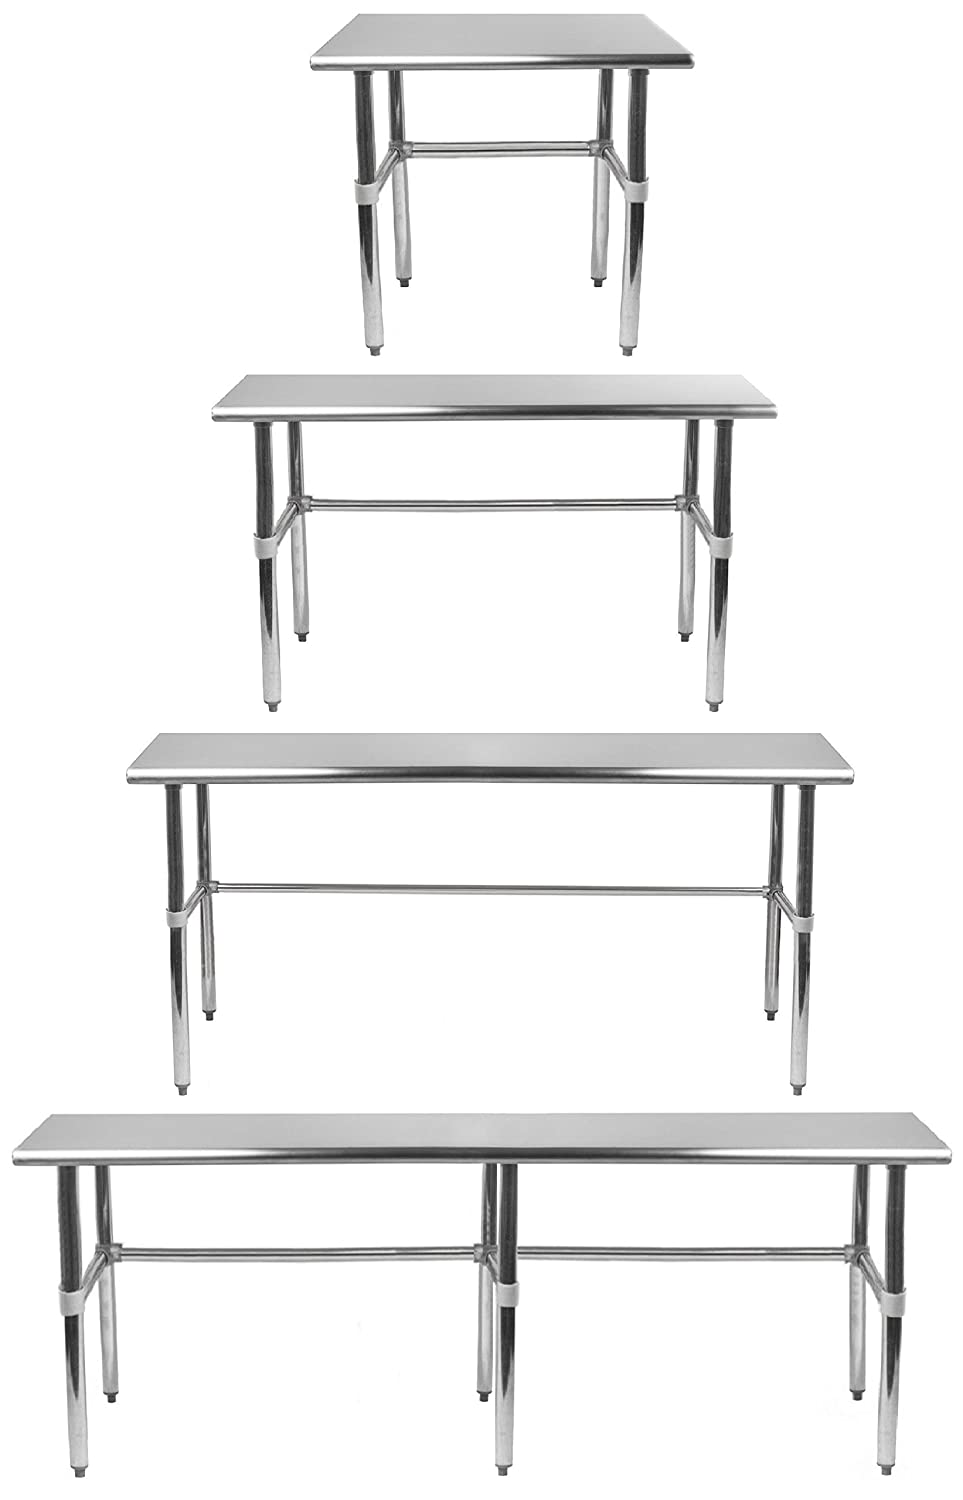 AmGood Stainless Steel Work Table - with Open Base (RCB) | Food Prep | Utility Work Station | NSF Certified | All Sizes